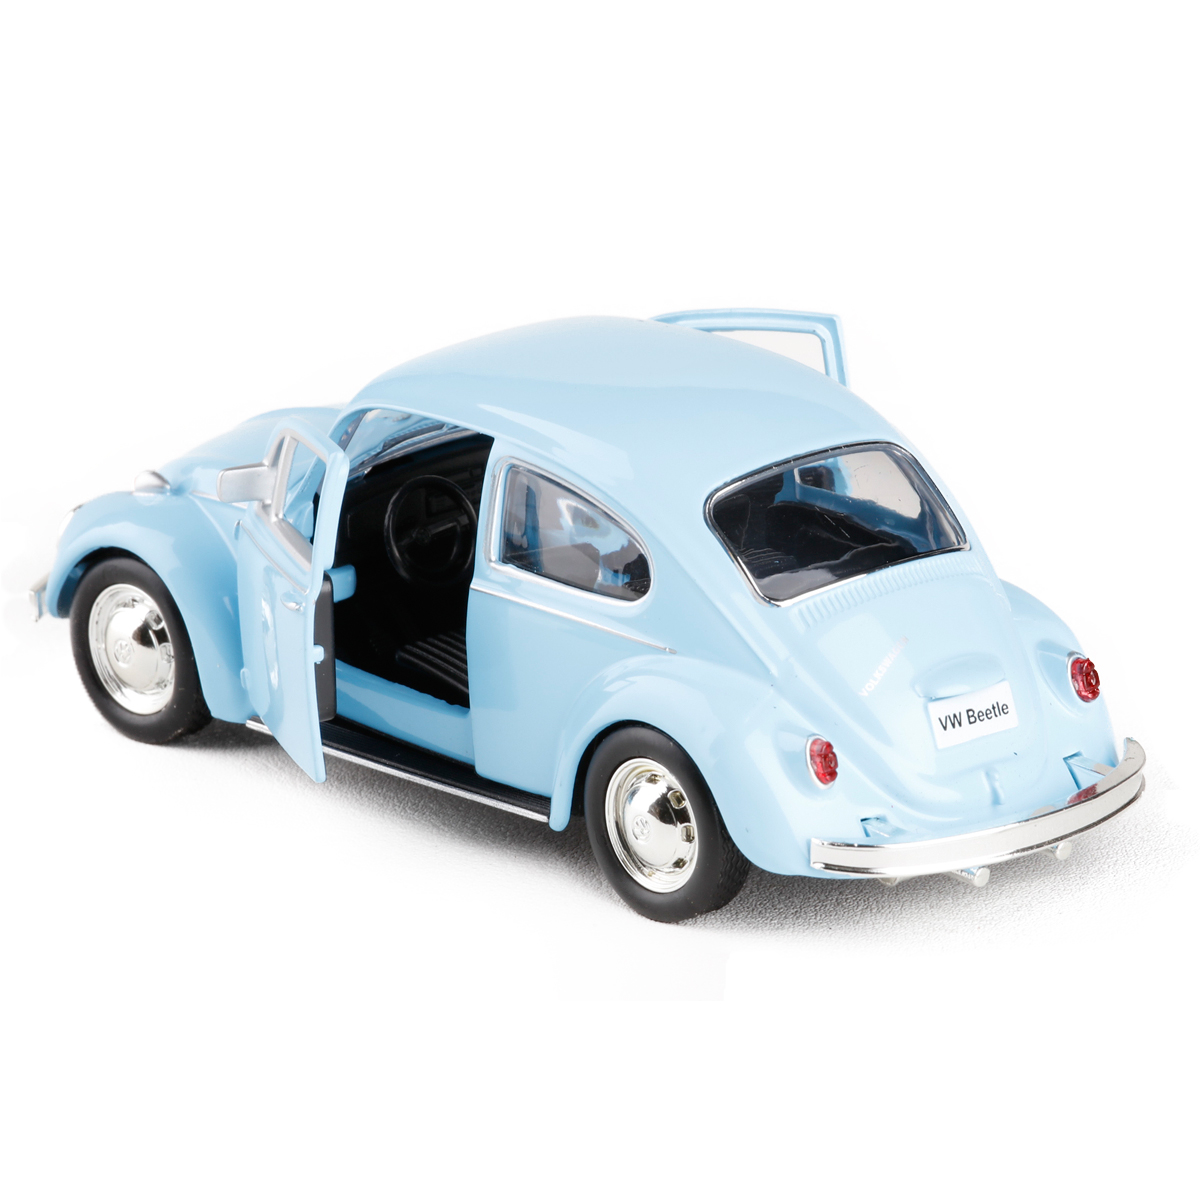 1:36 Scale Diecast Alloy Classic Car Model For TheVolks Wagen Beetle 1967 Version Collectible Model Collection Licensed Toys Car